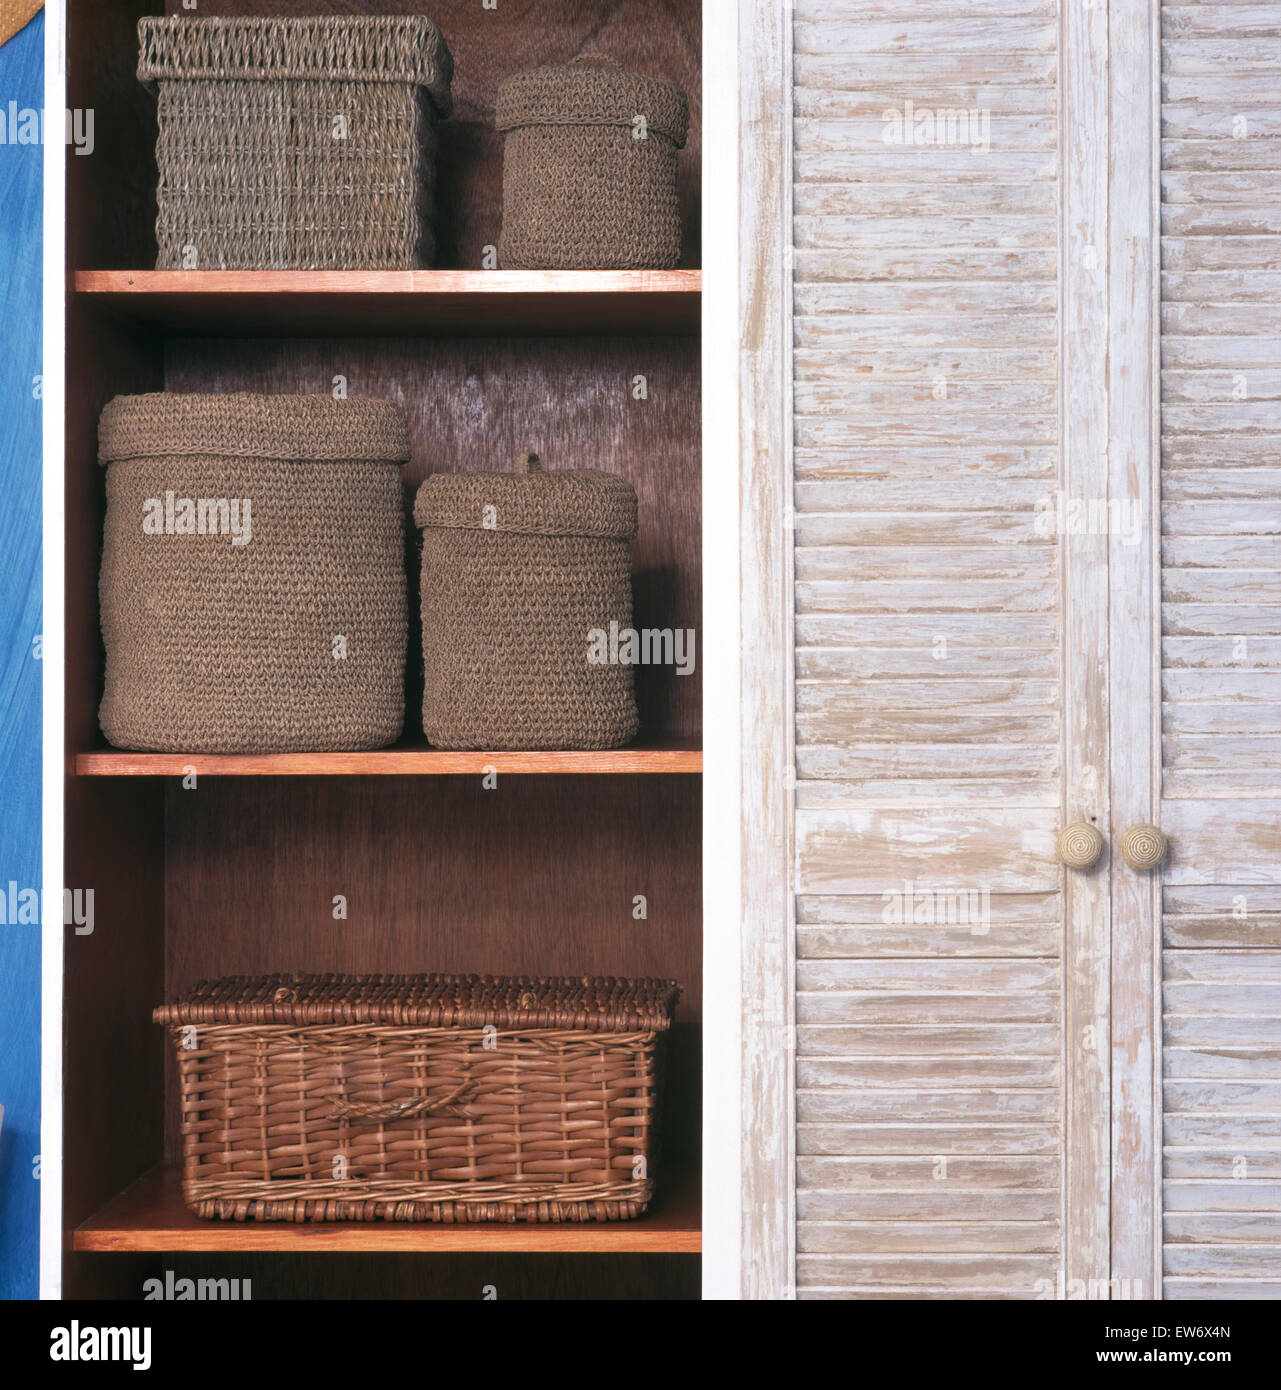 Close-up of cupboard with louvre doors and seagrass storage boxes and a wicker basket on shelves - Stock Image